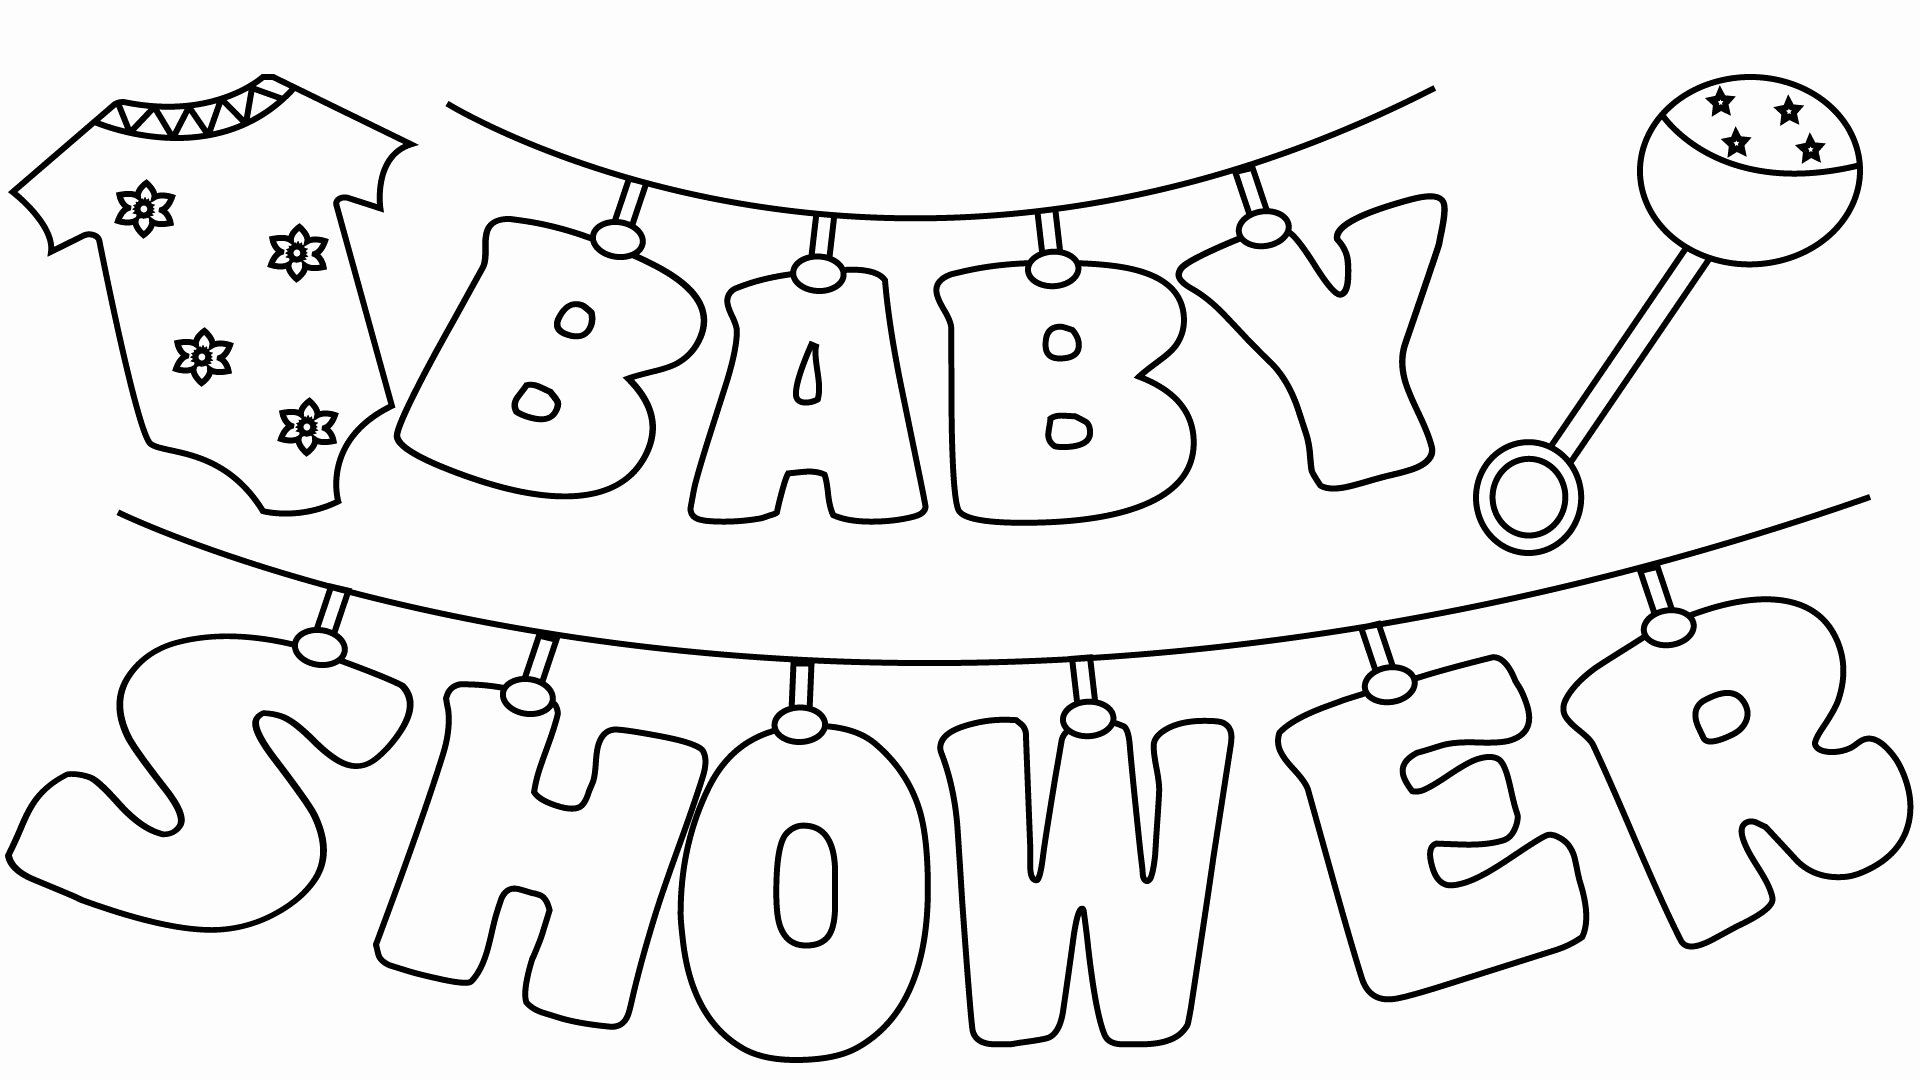 Coloring Book For Baby Awesome Free Printable Baby Shower Coloring Pages Baby Coloring Pages Baby Shower Printables Kids Printable Coloring Pages